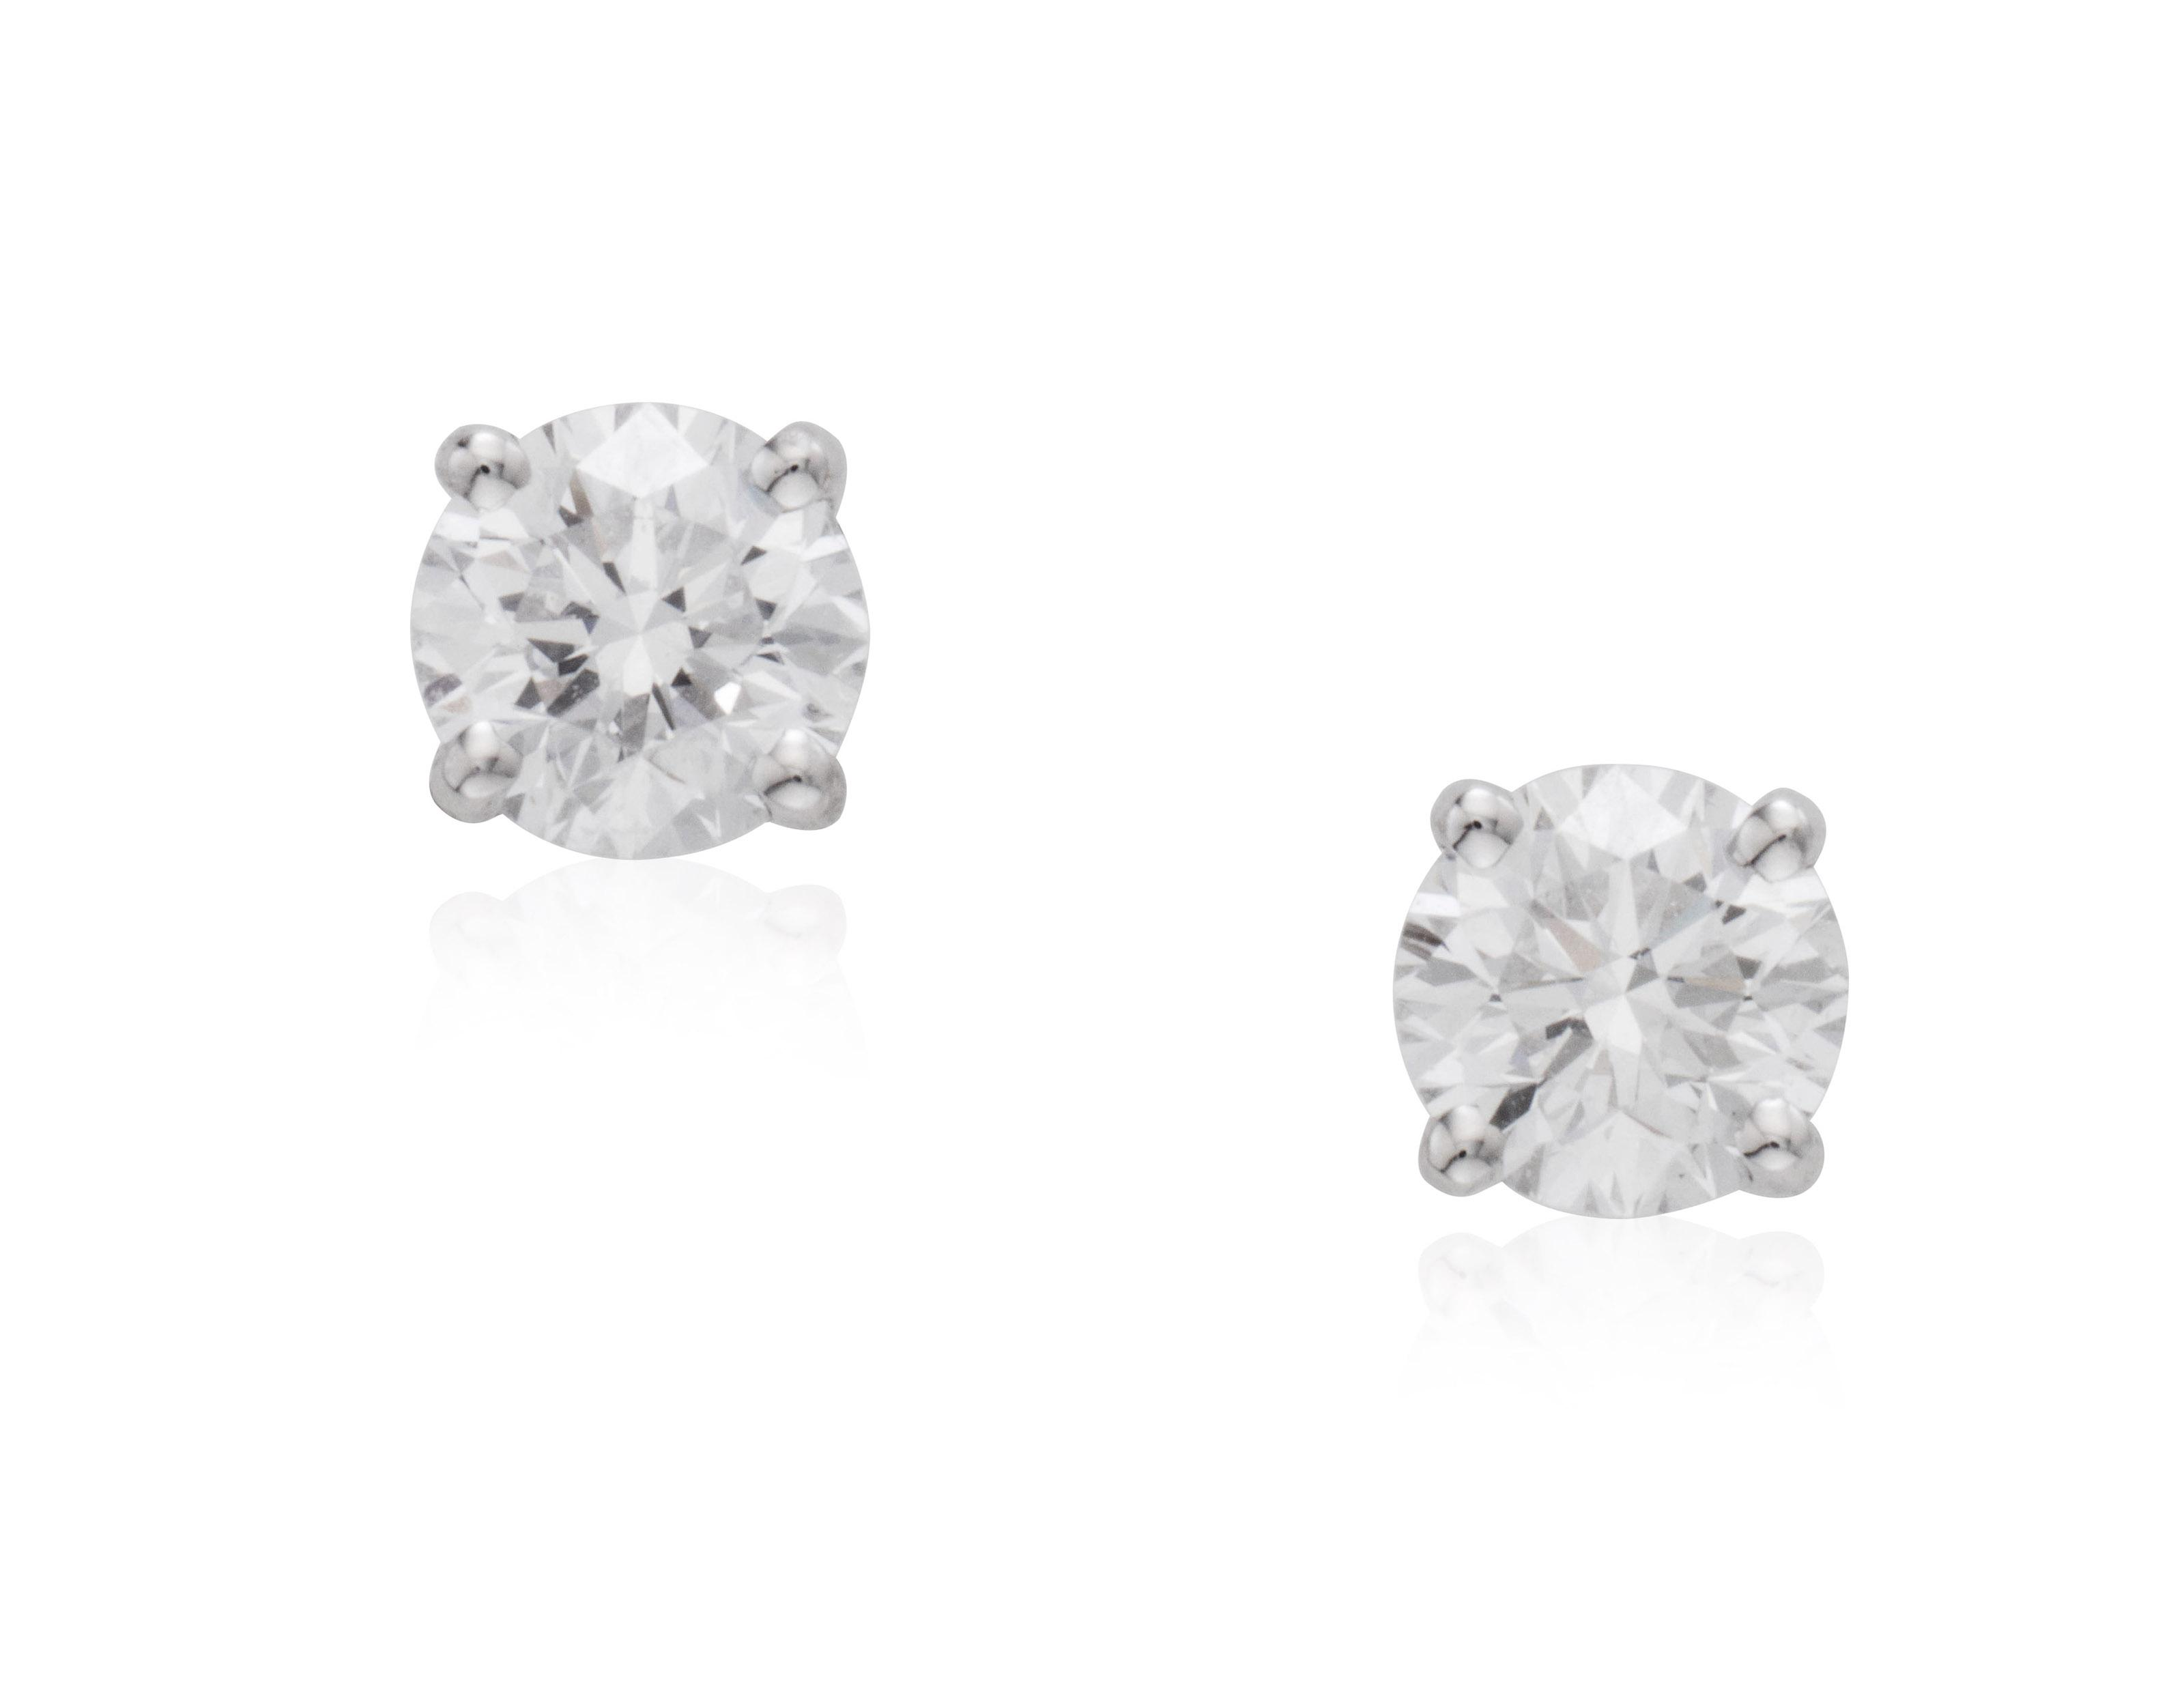 GRAFF DIAMOND STUD EARRINGS.